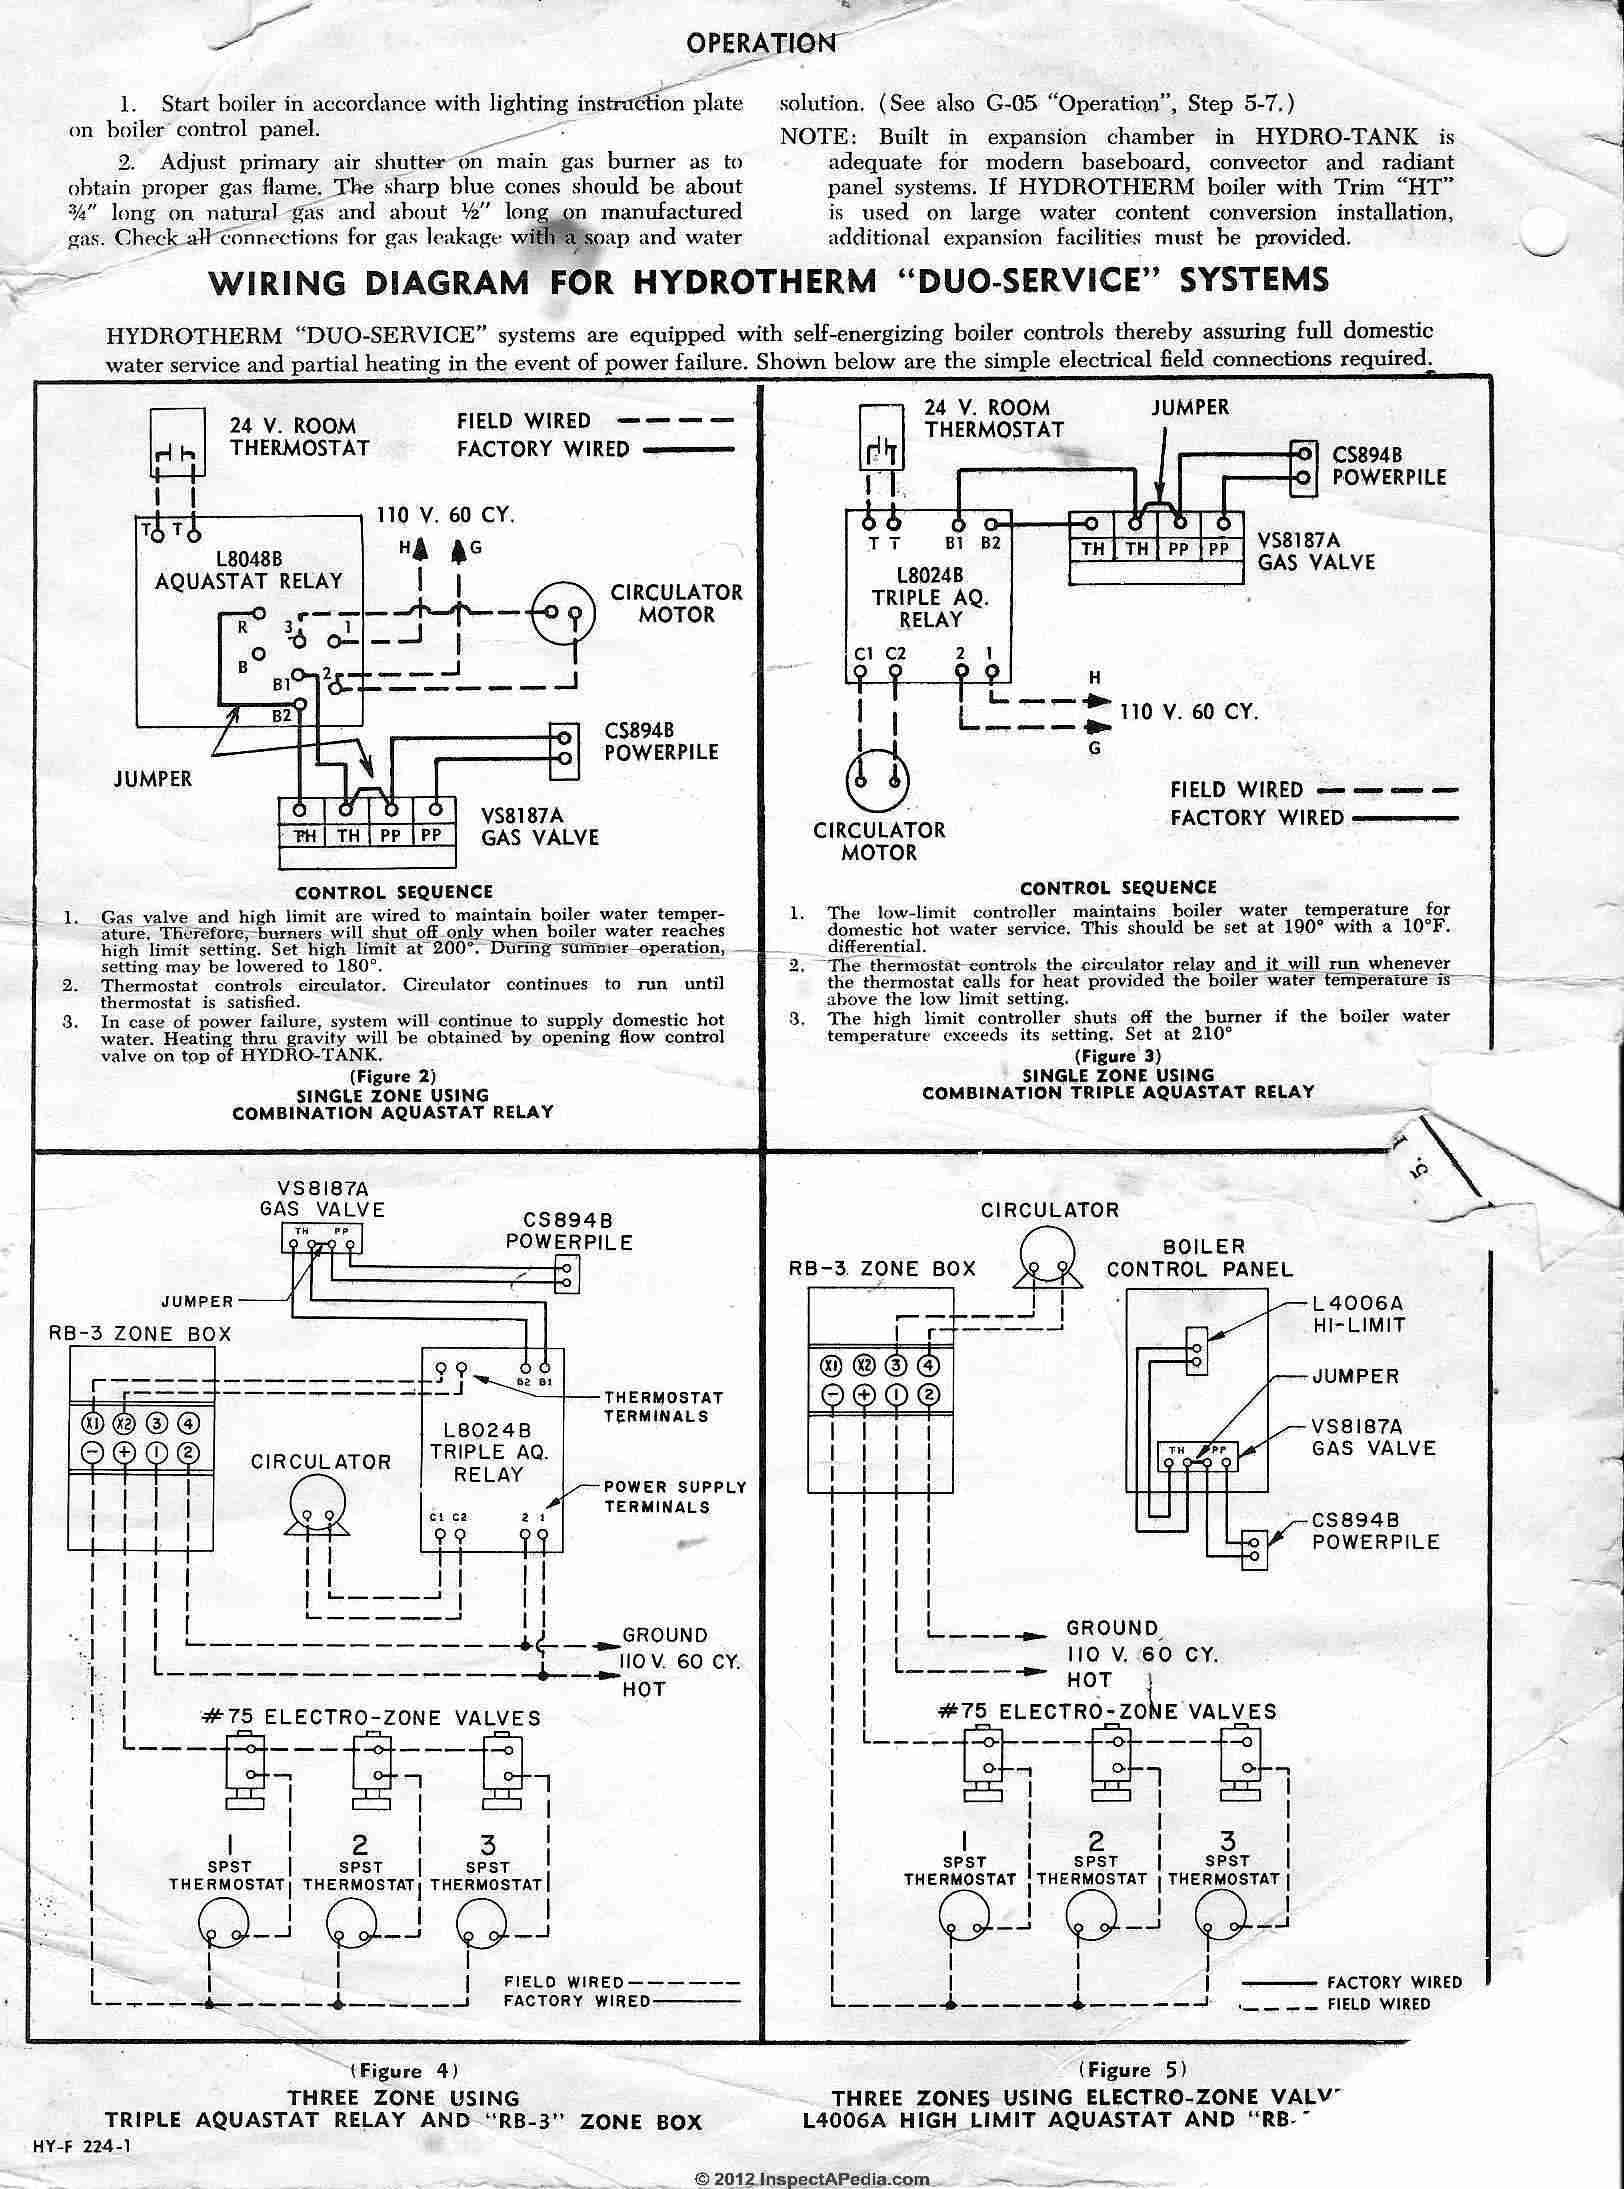 L8024B_Aquastat_0422_DJFcs heating boiler aquastat control diagnosis, troubleshooting, repair imit boiler thermostat wiring diagram at fashall.co